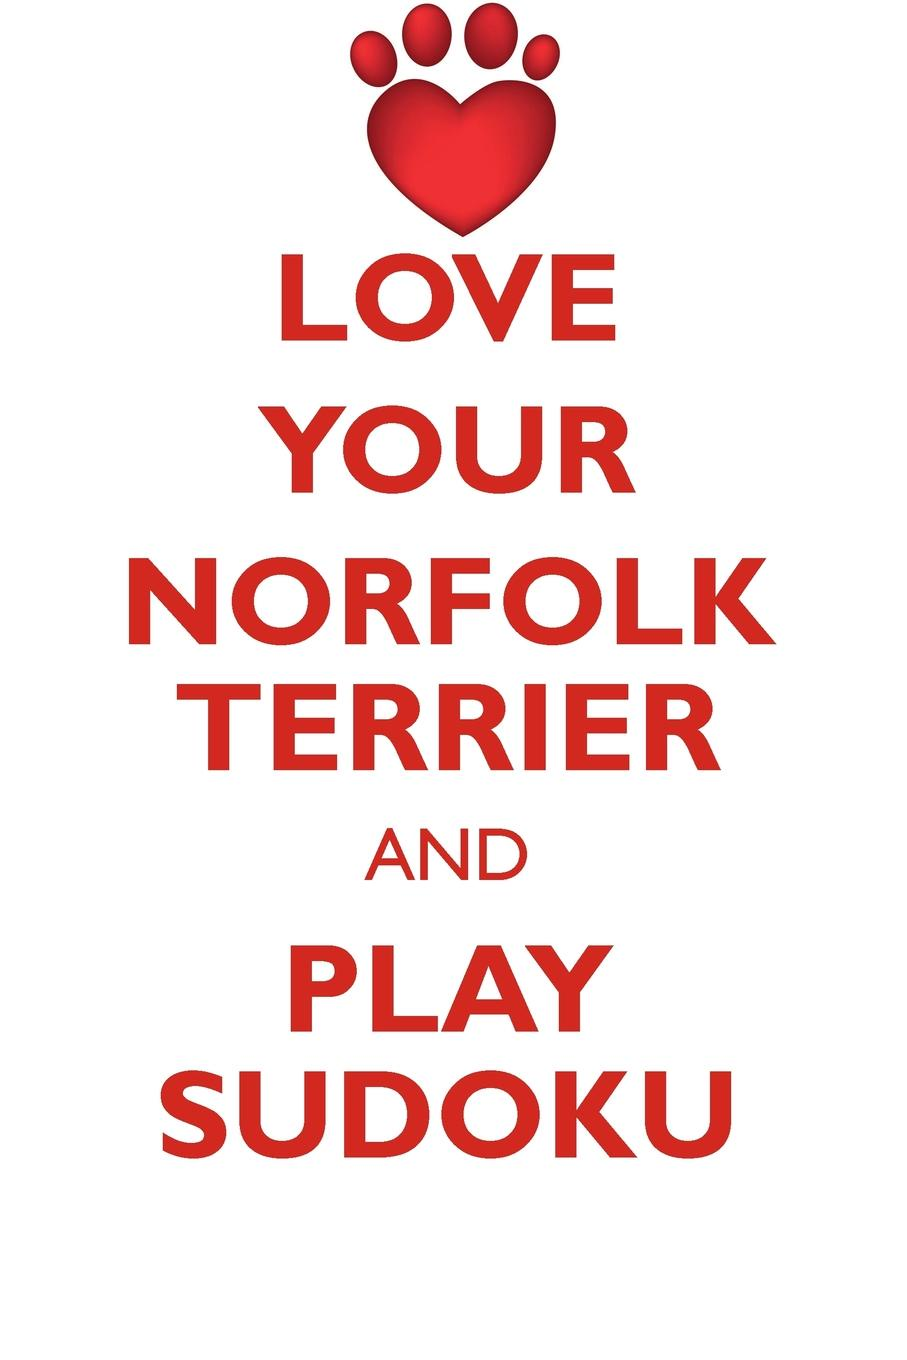 Loving Puzzles LOVE YOUR NORFOLK TERRIER AND PLAY SUDOKU NORFOLK TERRIER SUDOKU LEVEL 1 of 15 john glyde the norfolk garland a collection of the superstitious beliefs and practices proverbs curious customs ballads and songs of the people of norfolk or peculiarities of norfolk celebrities